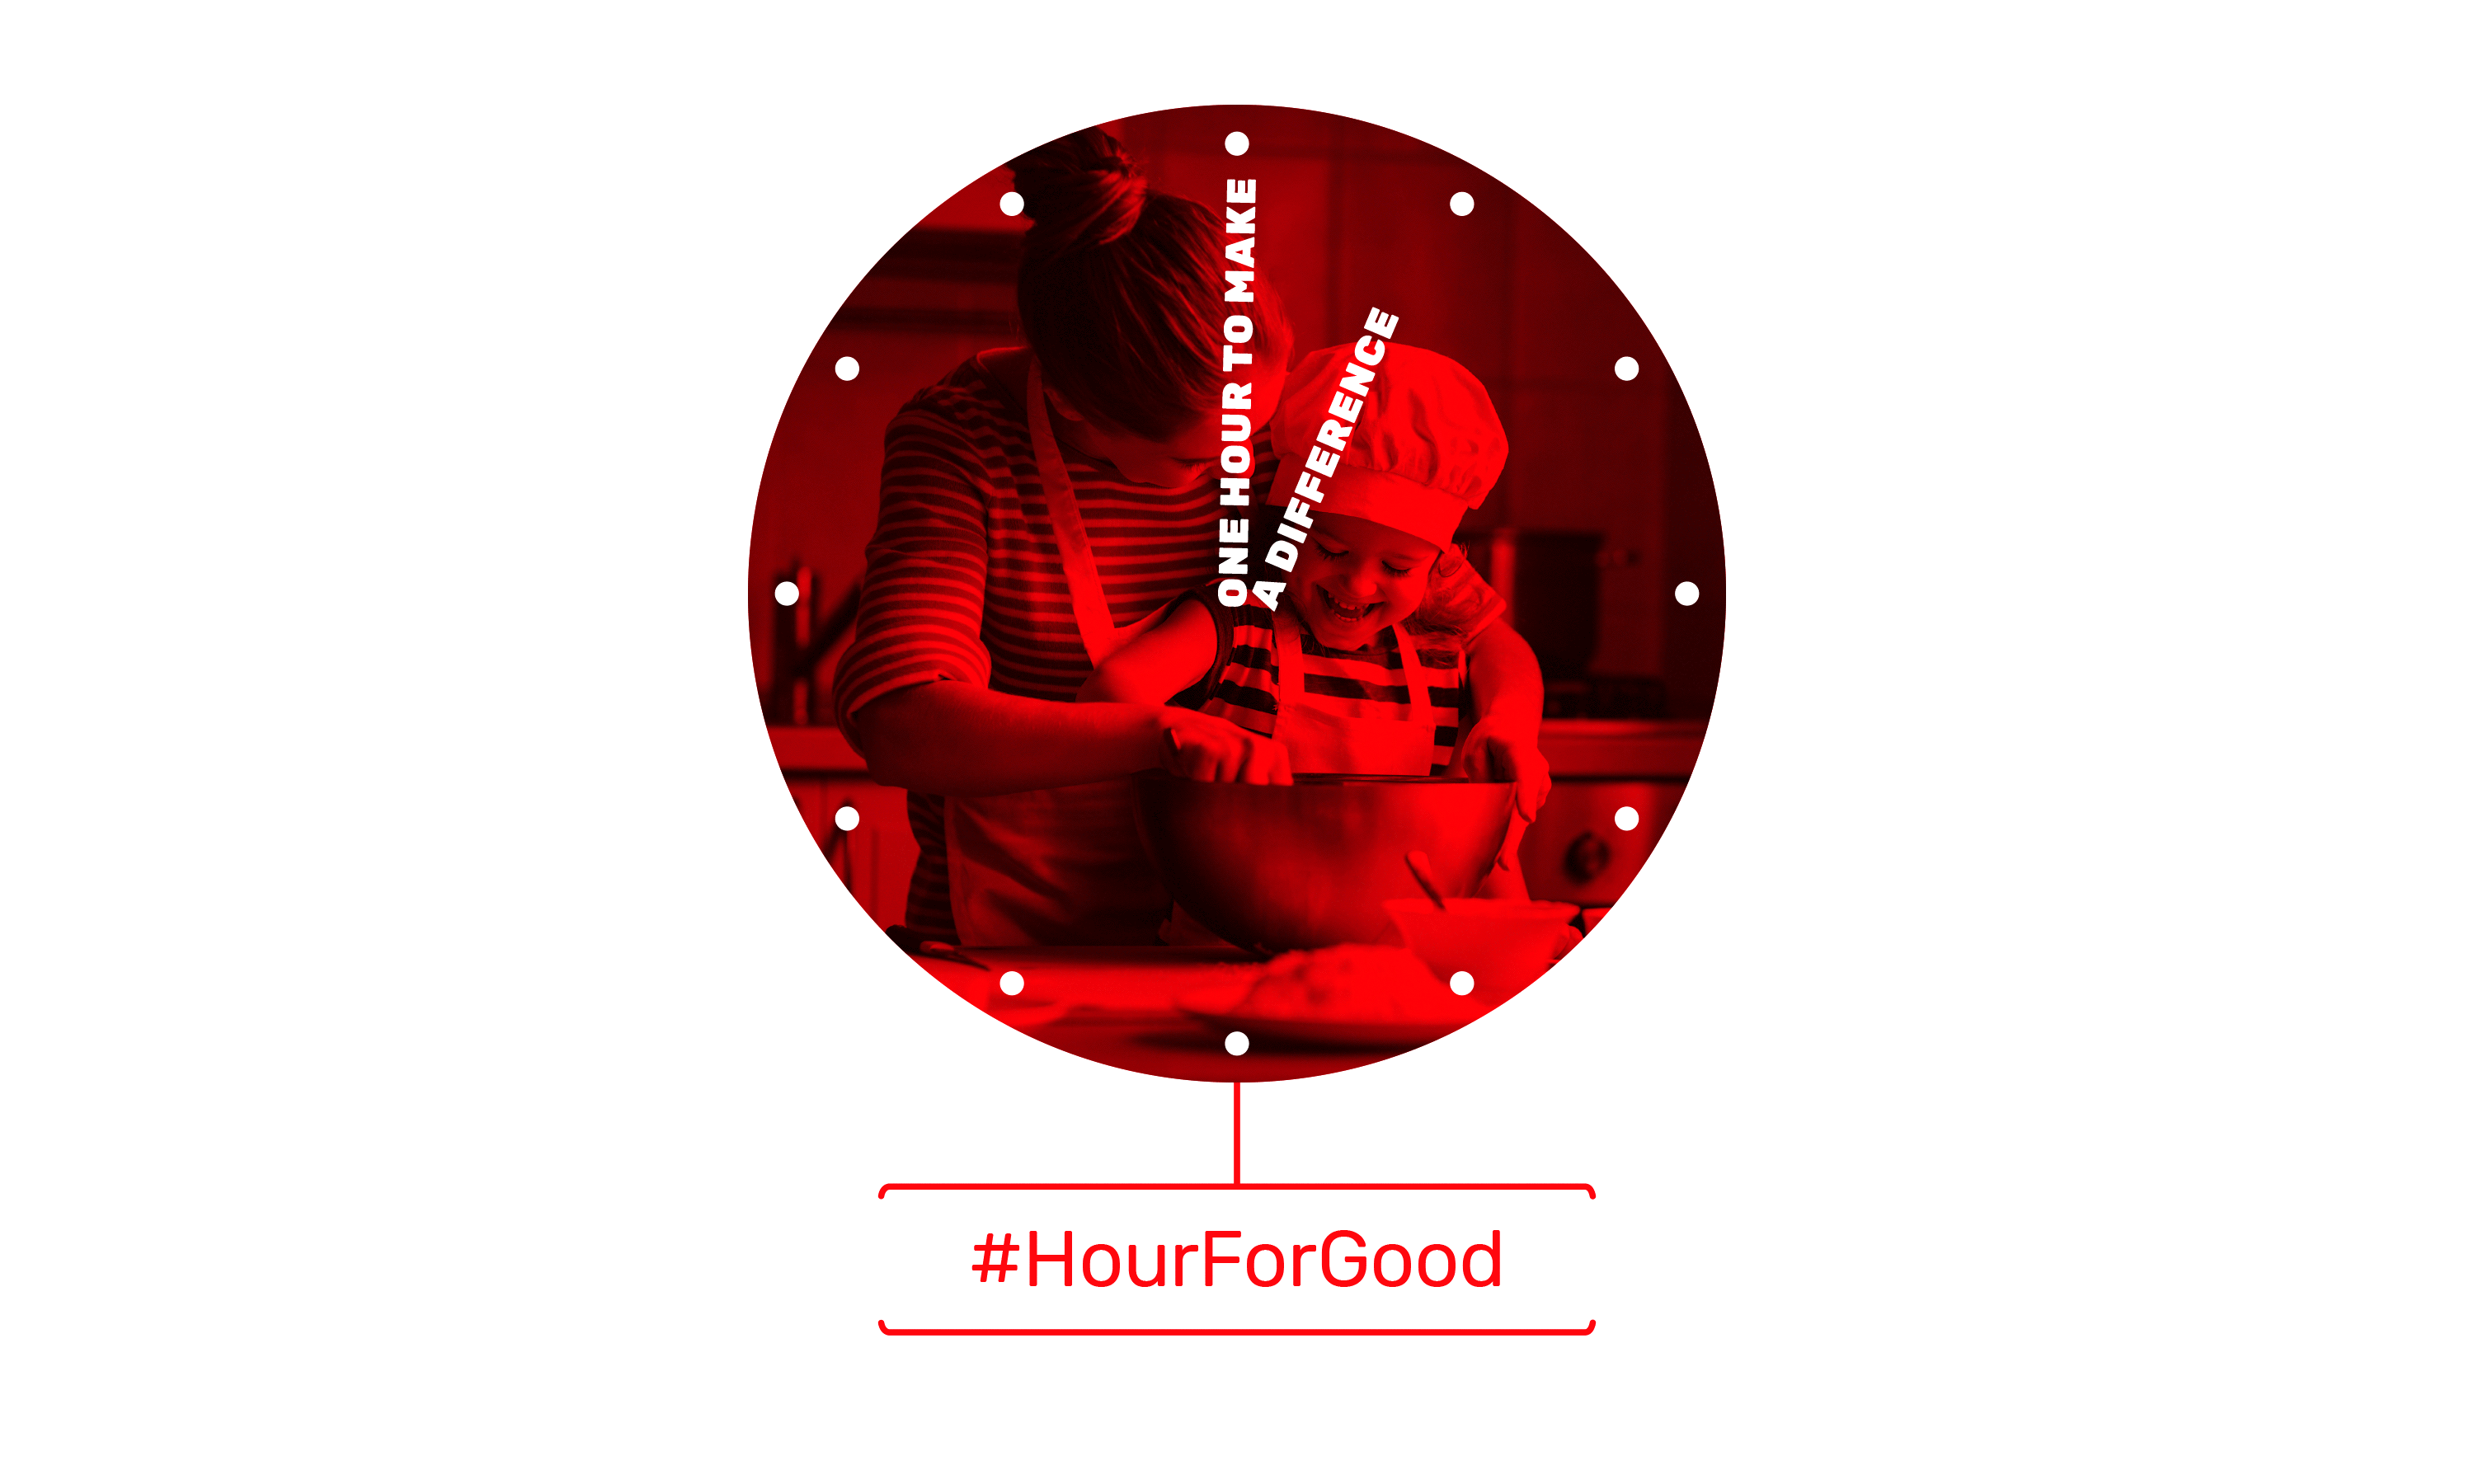 Brand campaign by Neon - designed by Dana Robertson - Charity sector branding - Action for children - An hour for good graphic cooking together